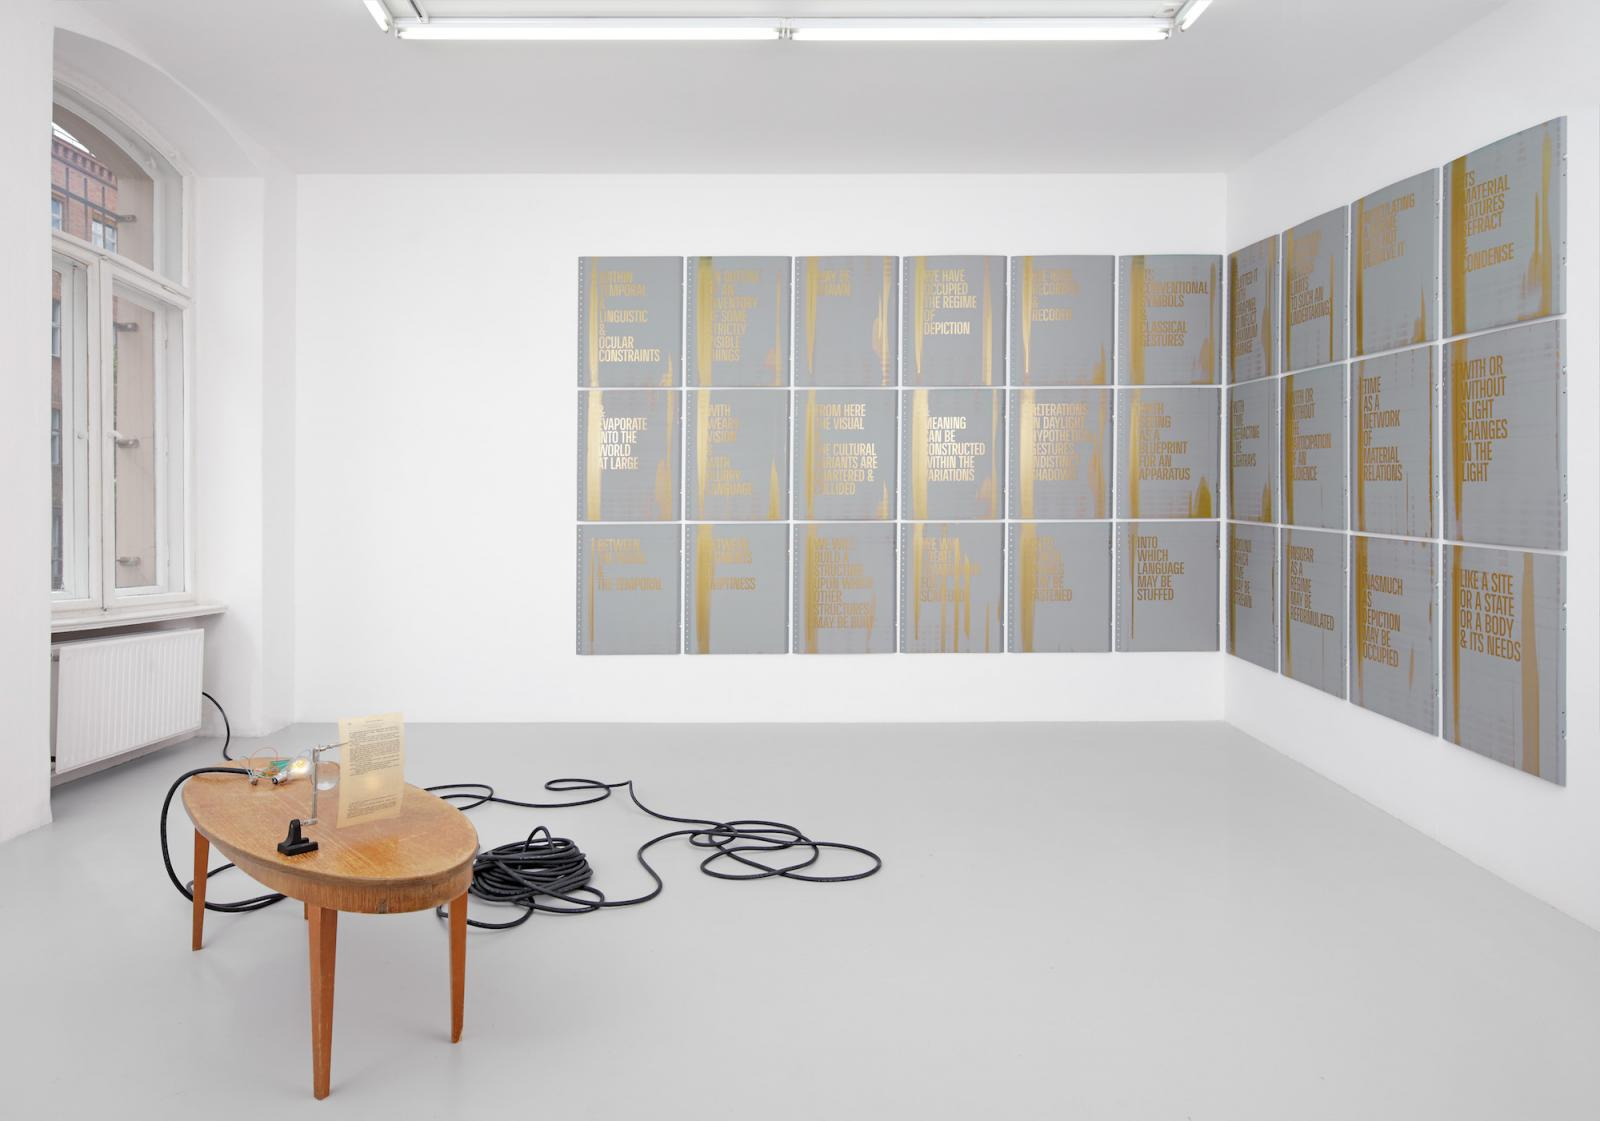 Pavel Büchler /Life & Opinions /(2004)  Studio for Propositional Cinema /ALTERATIONS IN DAYLIGHT:/ /HYPOTHETICAL GESTURES: INDISTINCT SHADOWS/ installation view at Tanya Leighton in cooperation with Galerie Max Mayer